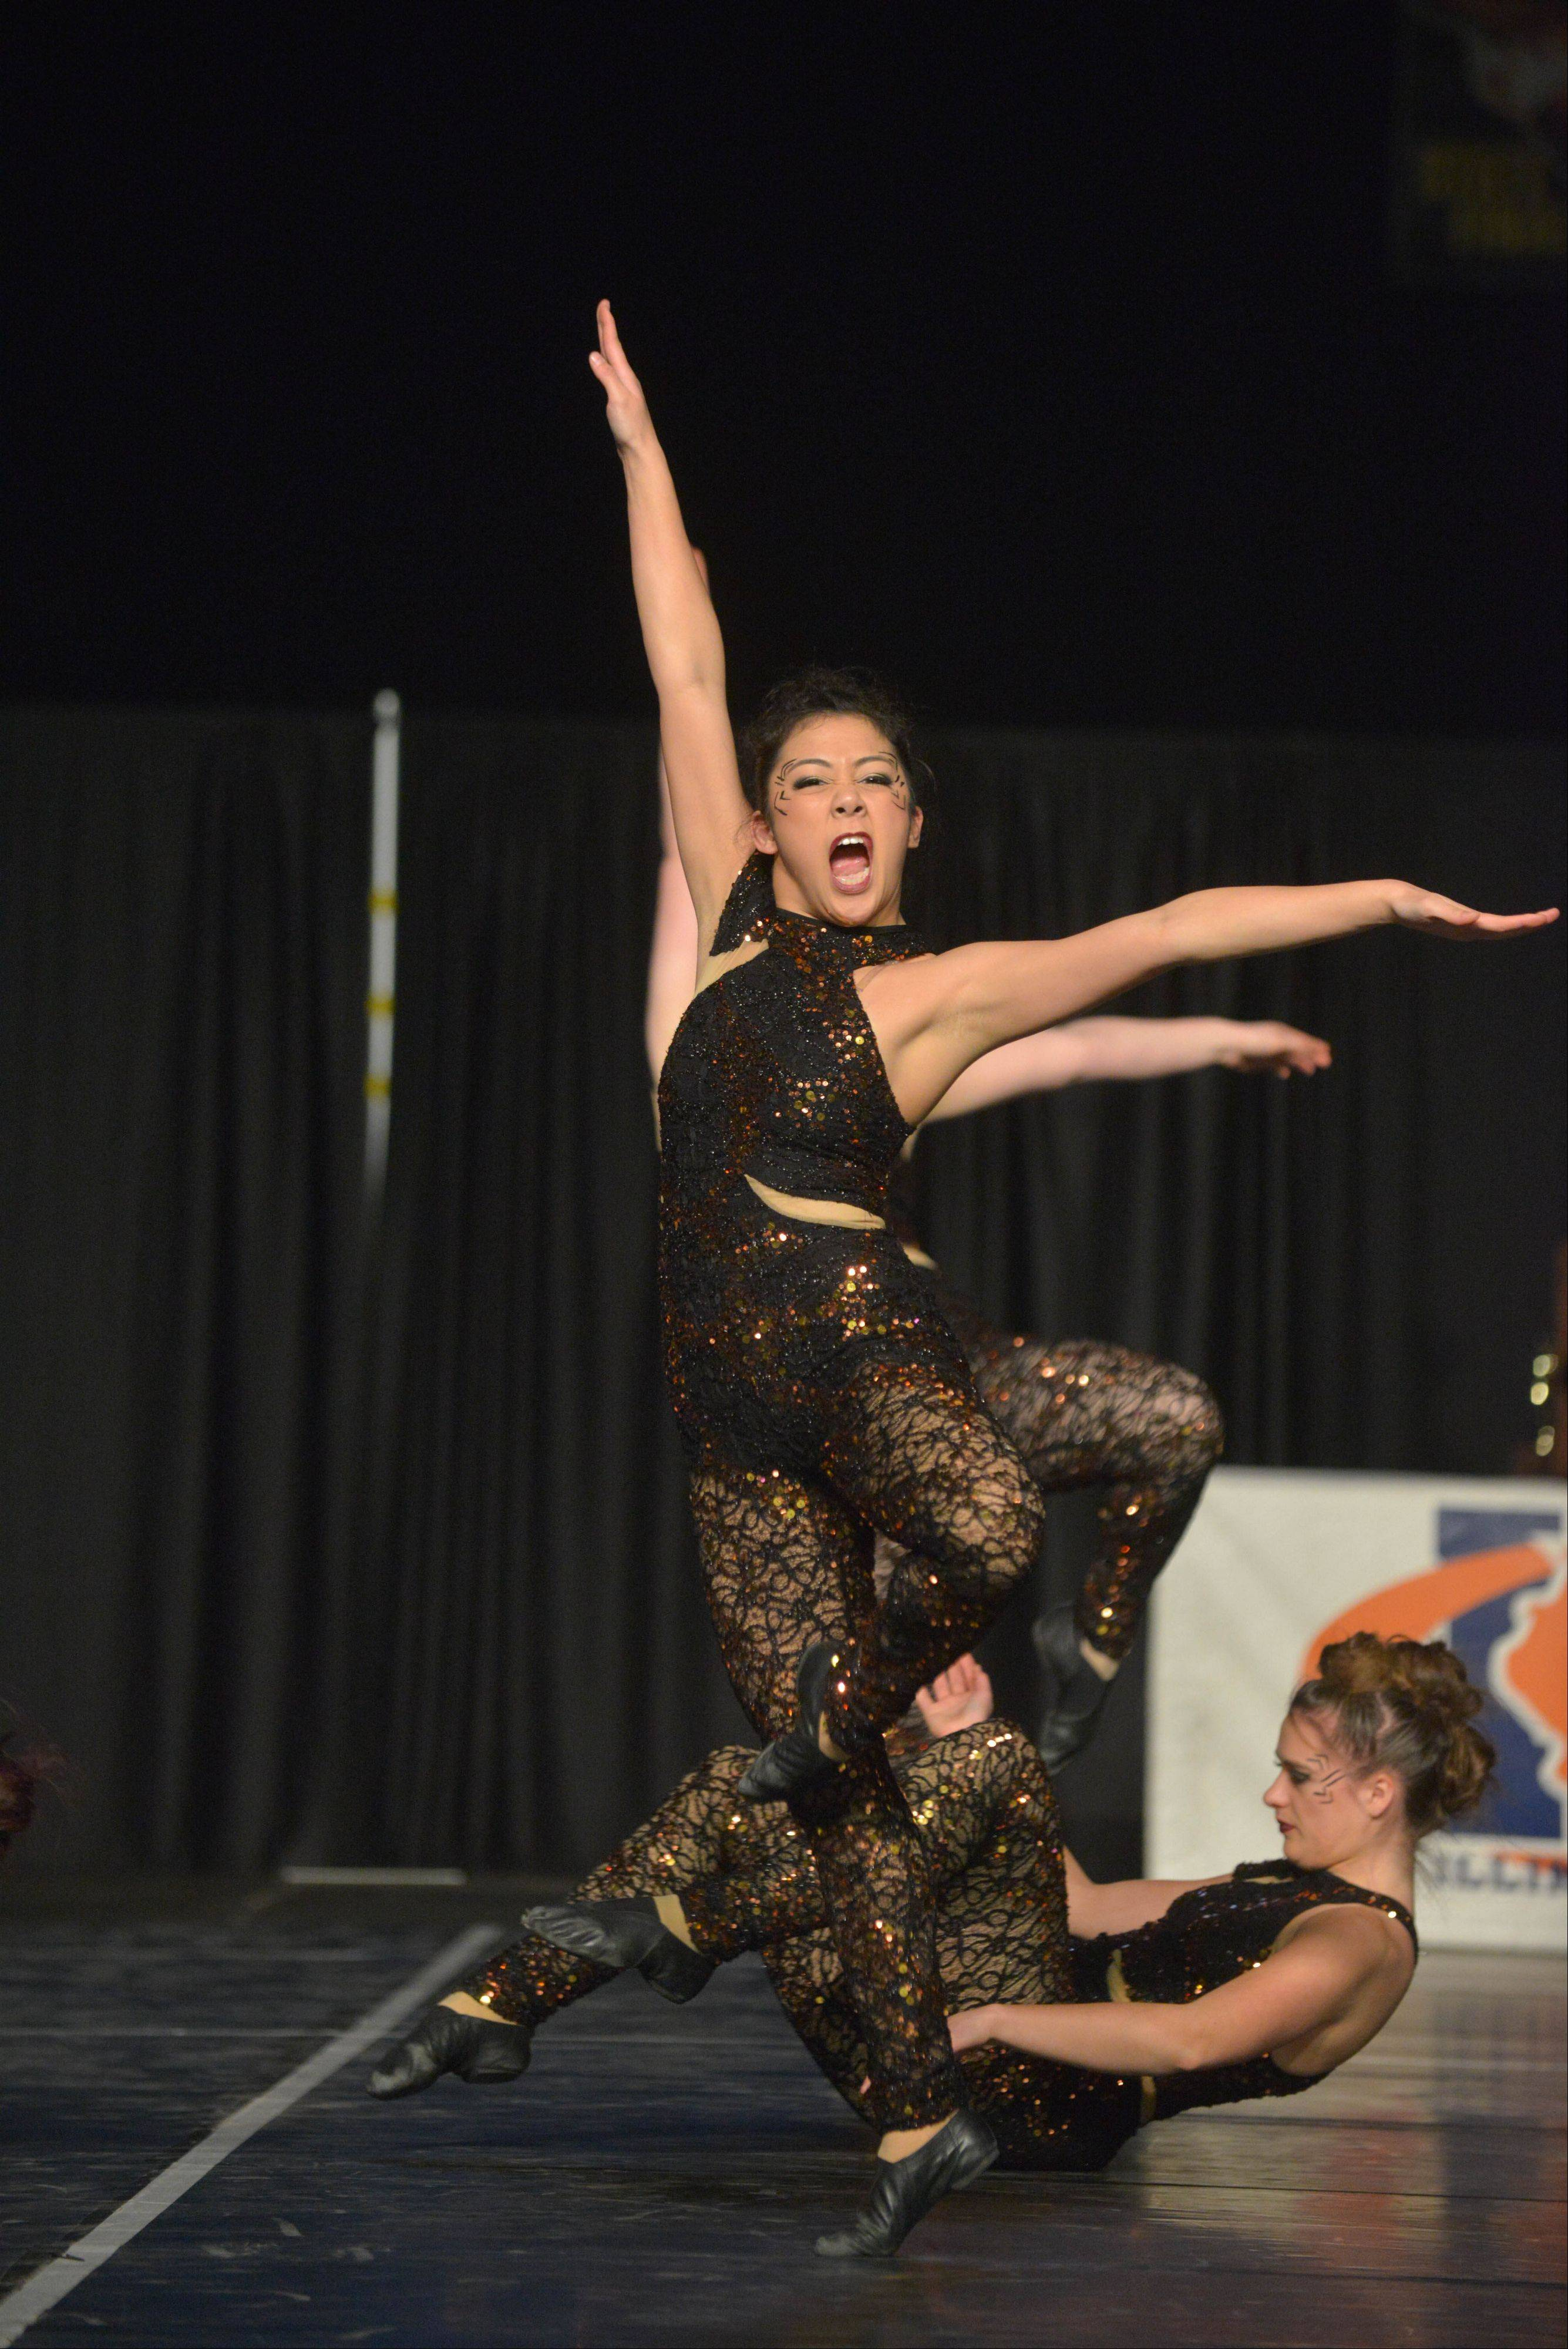 Downers Grove South High School took part in the IHSA Dance State Final at U.S. Cellular Coliseum in Bloomington Saturday. 90 teams vied for state champion at this event.